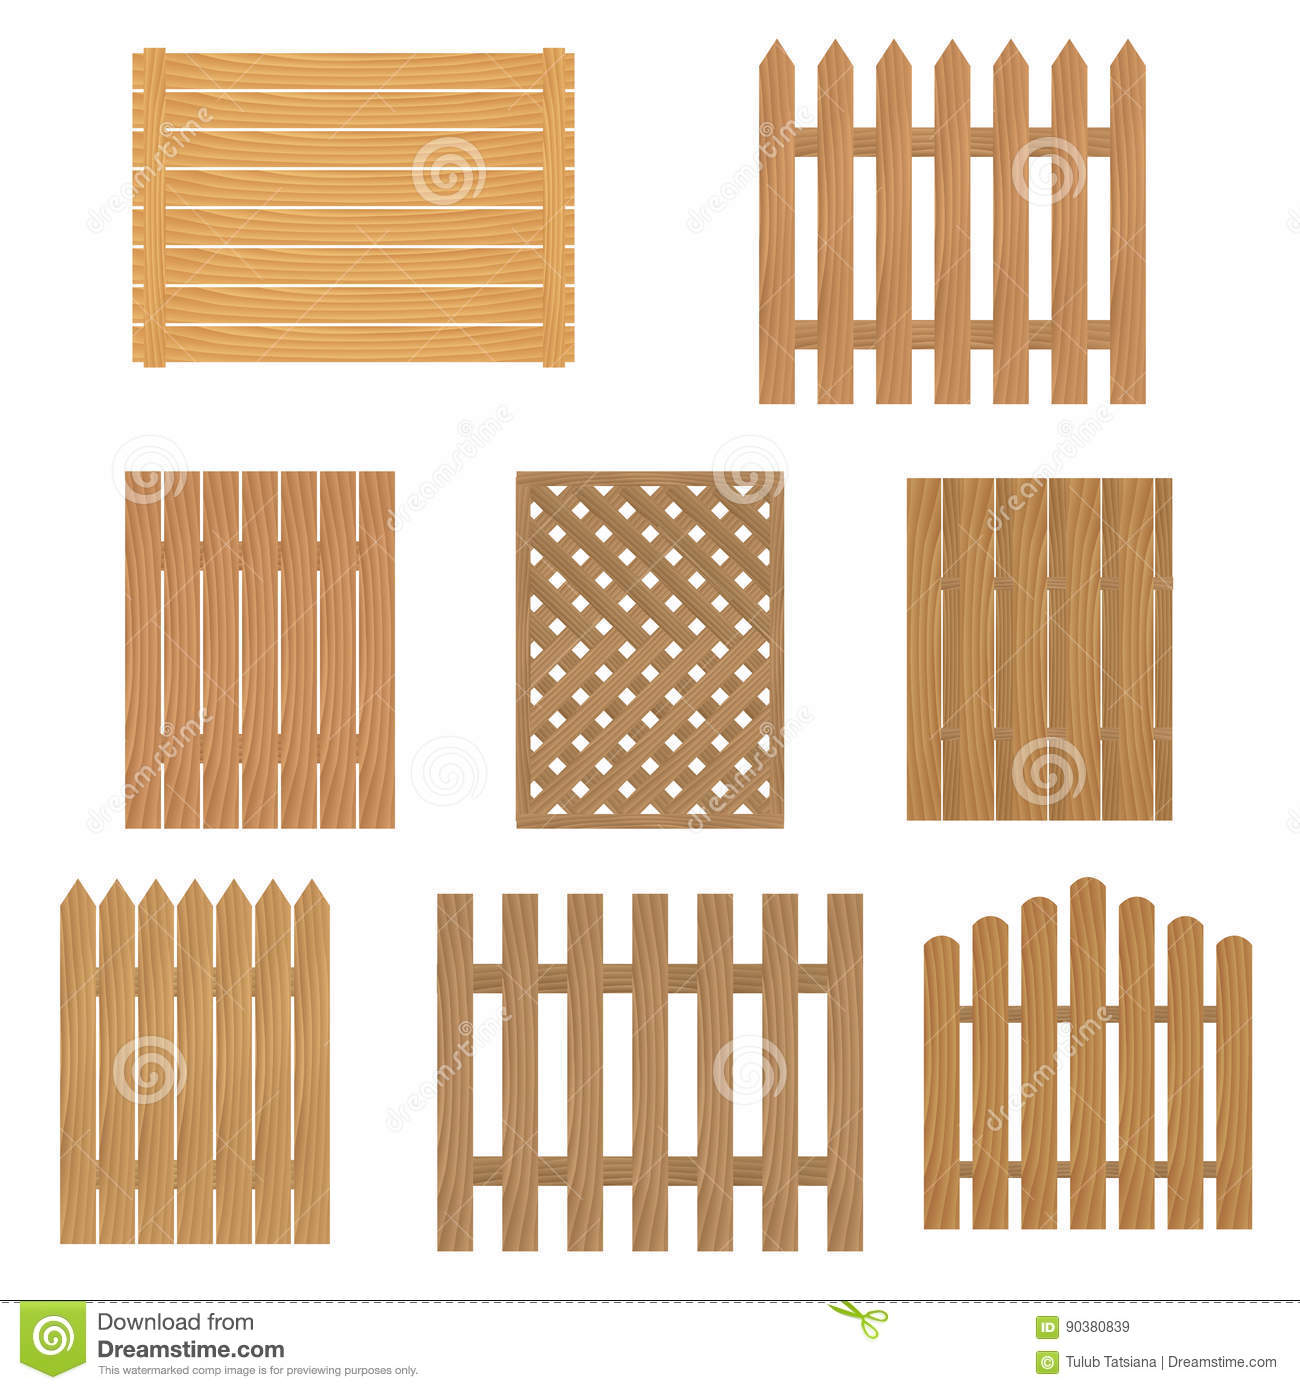 extraordinary types of wooden fence styles plans